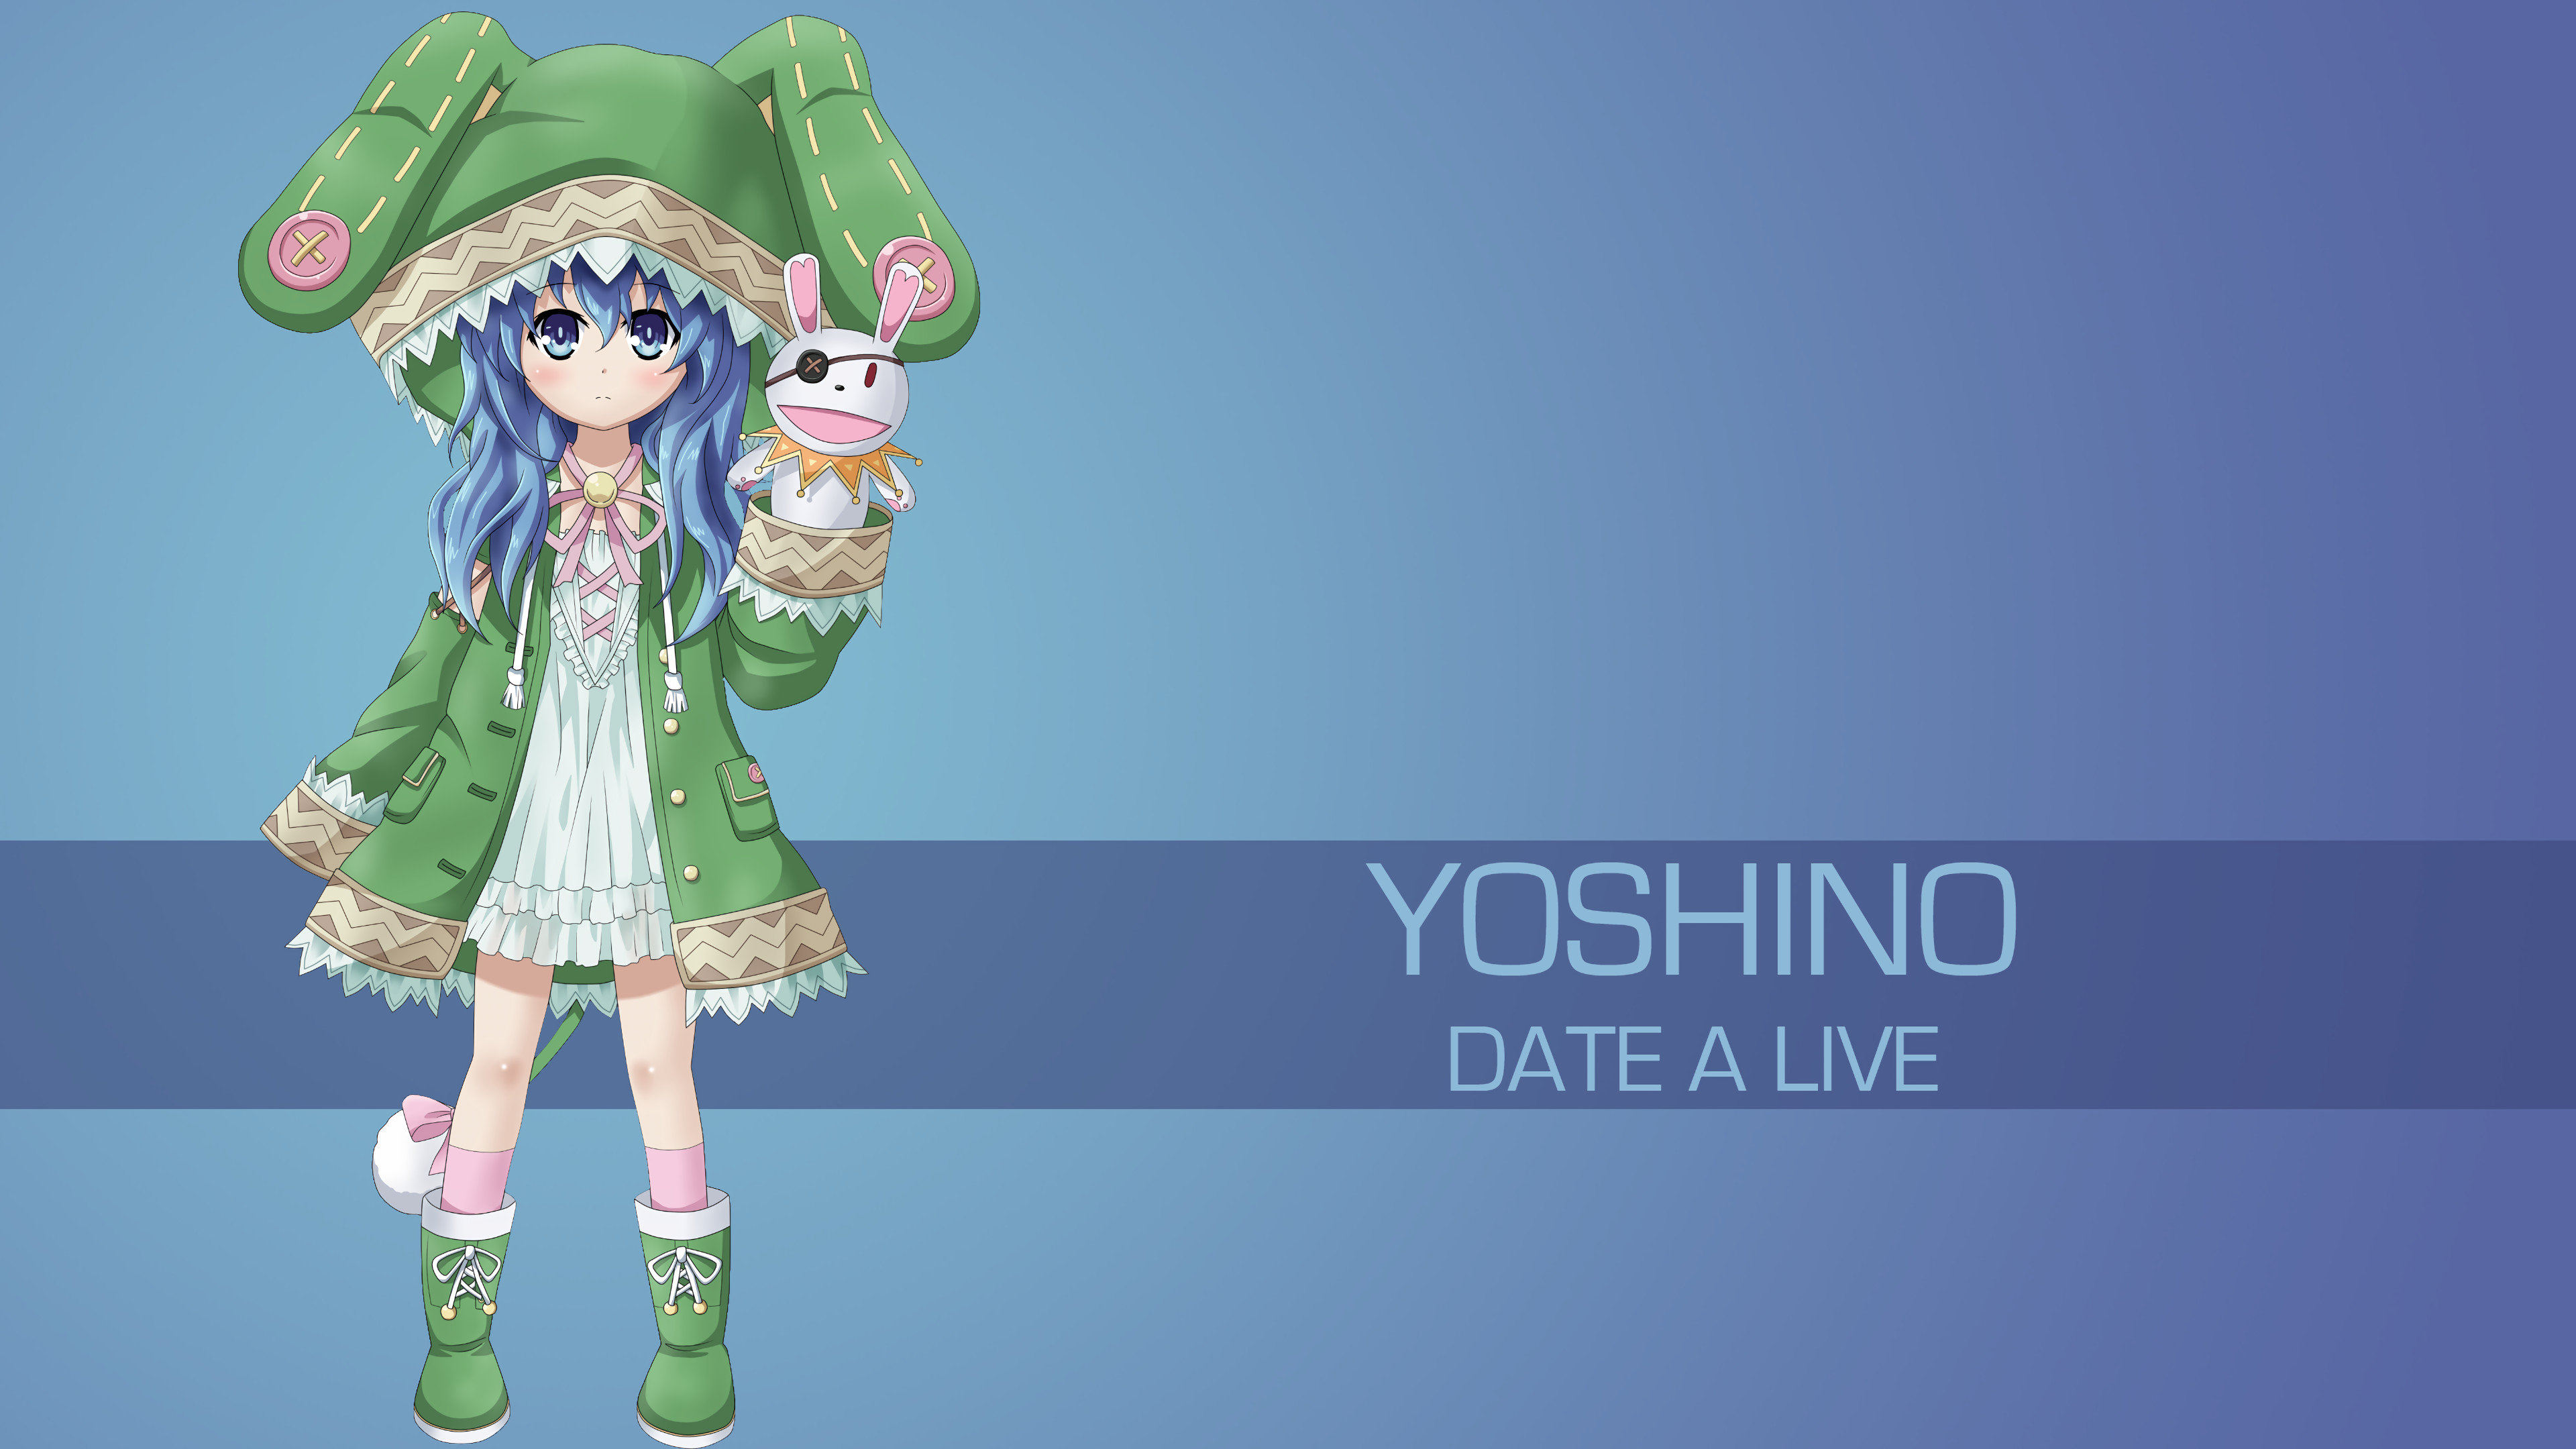 High resolution Yoshino (Date A Live) uhd 4k wallpaper ID:463749 for computer